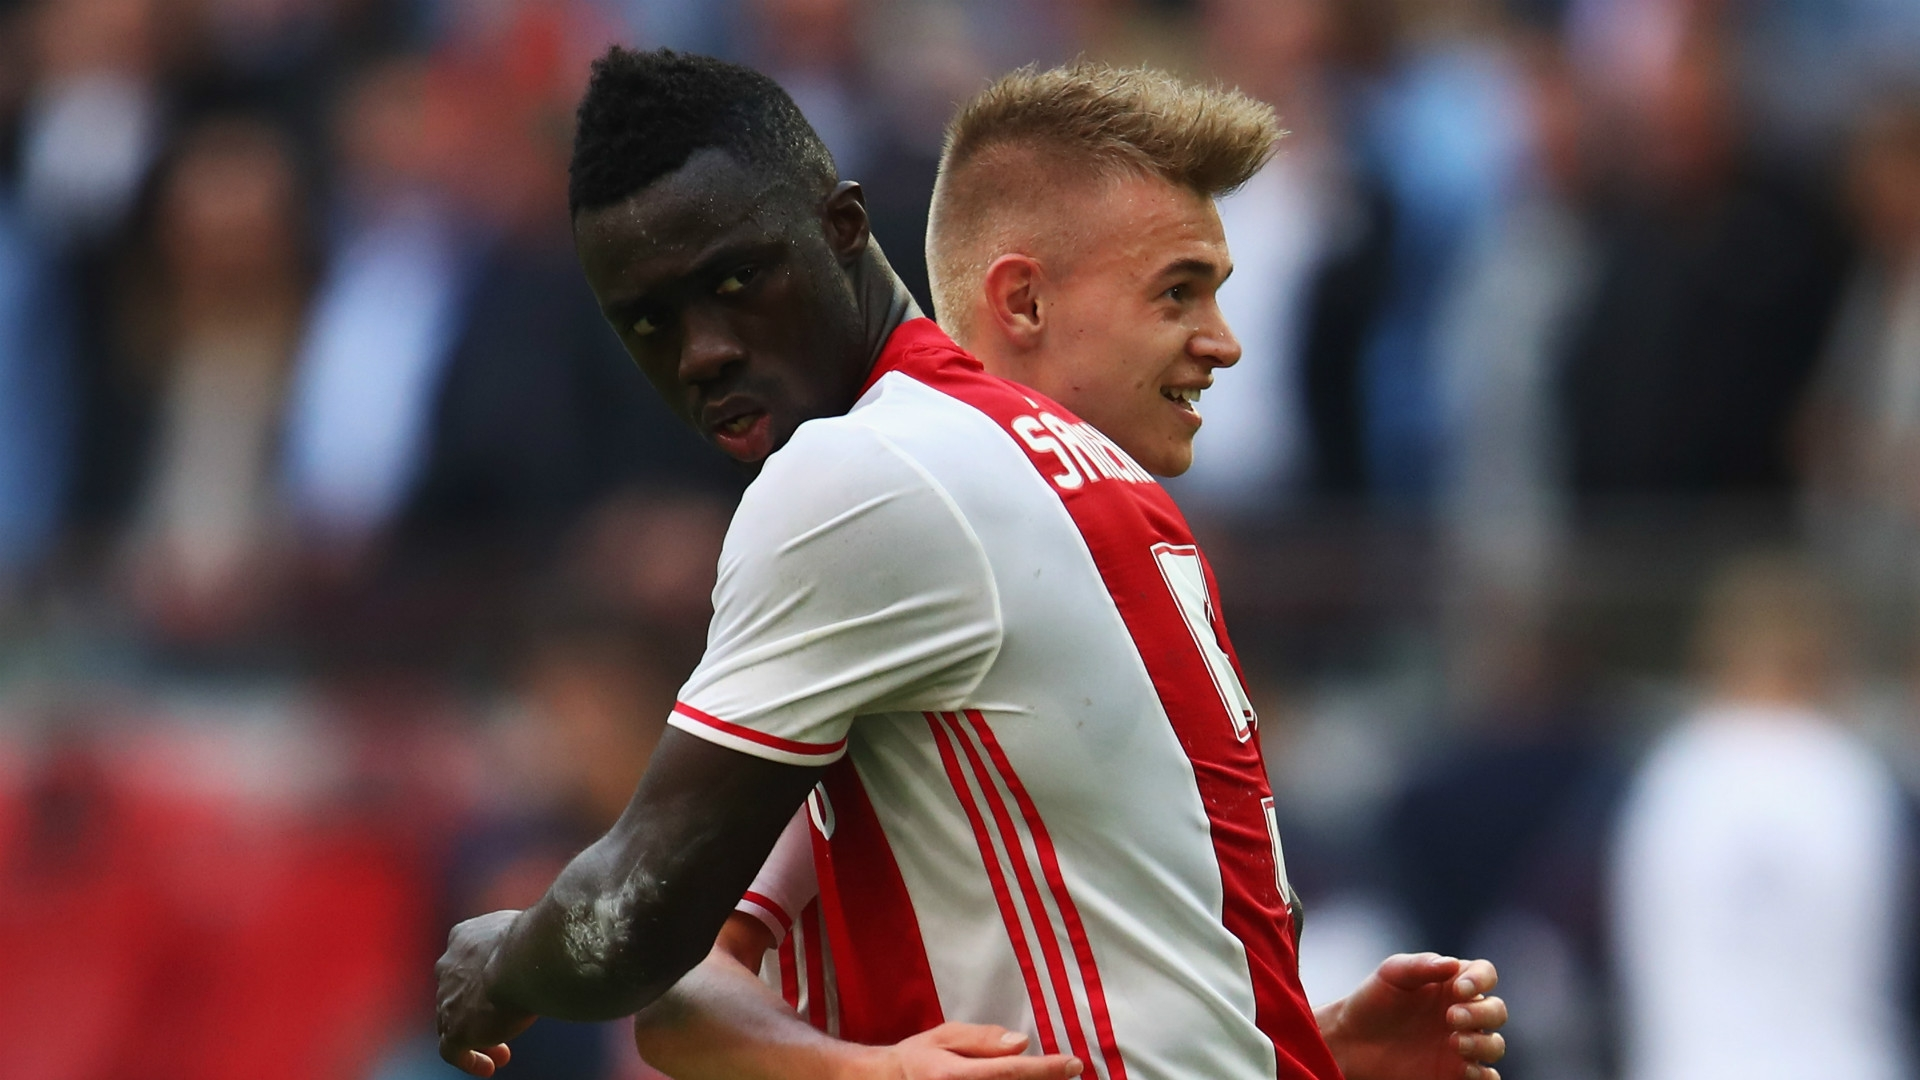 Don't expect defender Davinson Sanchez to go anywhere either. At least not for a price of less than €40million.